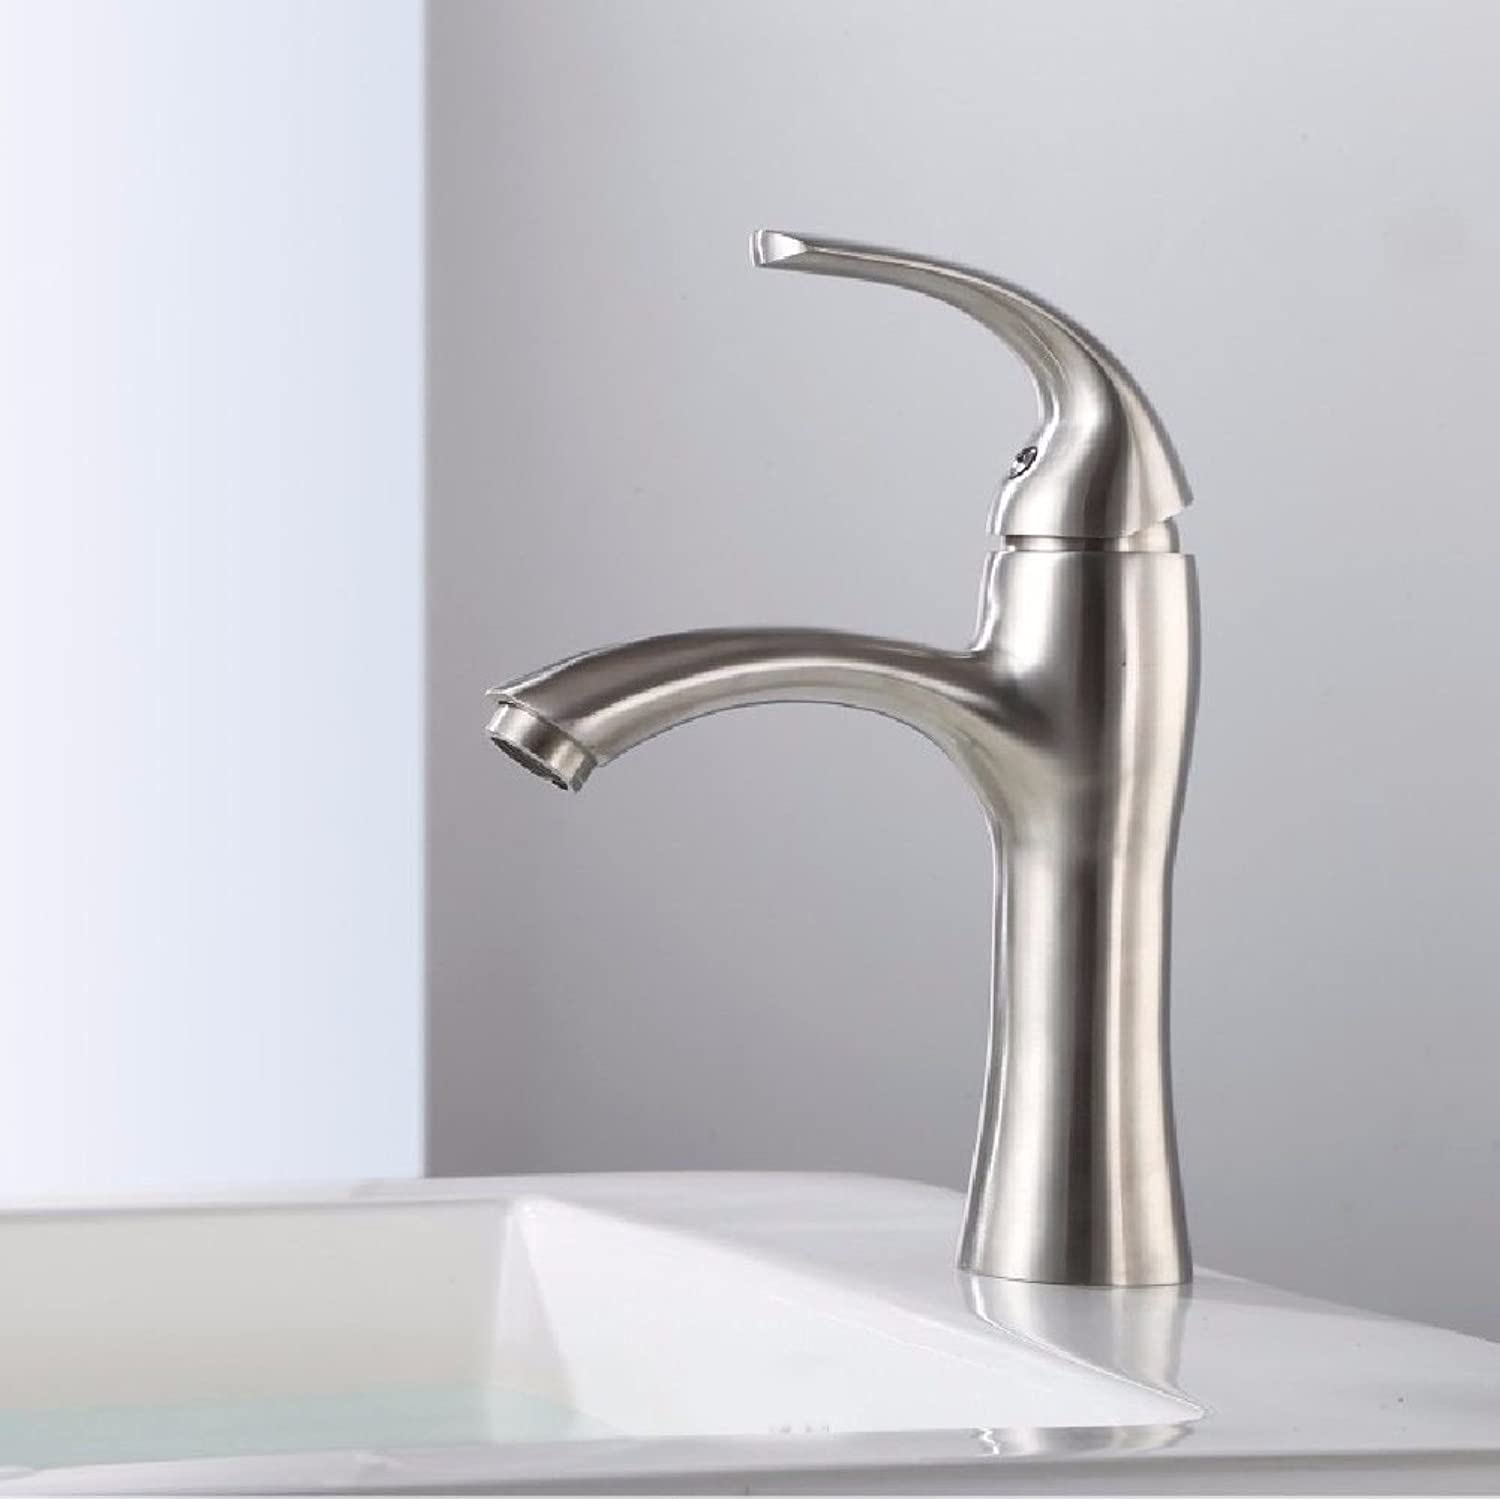 Lalaky Taps Faucet Kitchen Mixer Sink Waterfall Bathroom Mixer Basin Mixer Tap for Kitchen Bathroom and Washroom 304 Stainless Steel Wire Drawing